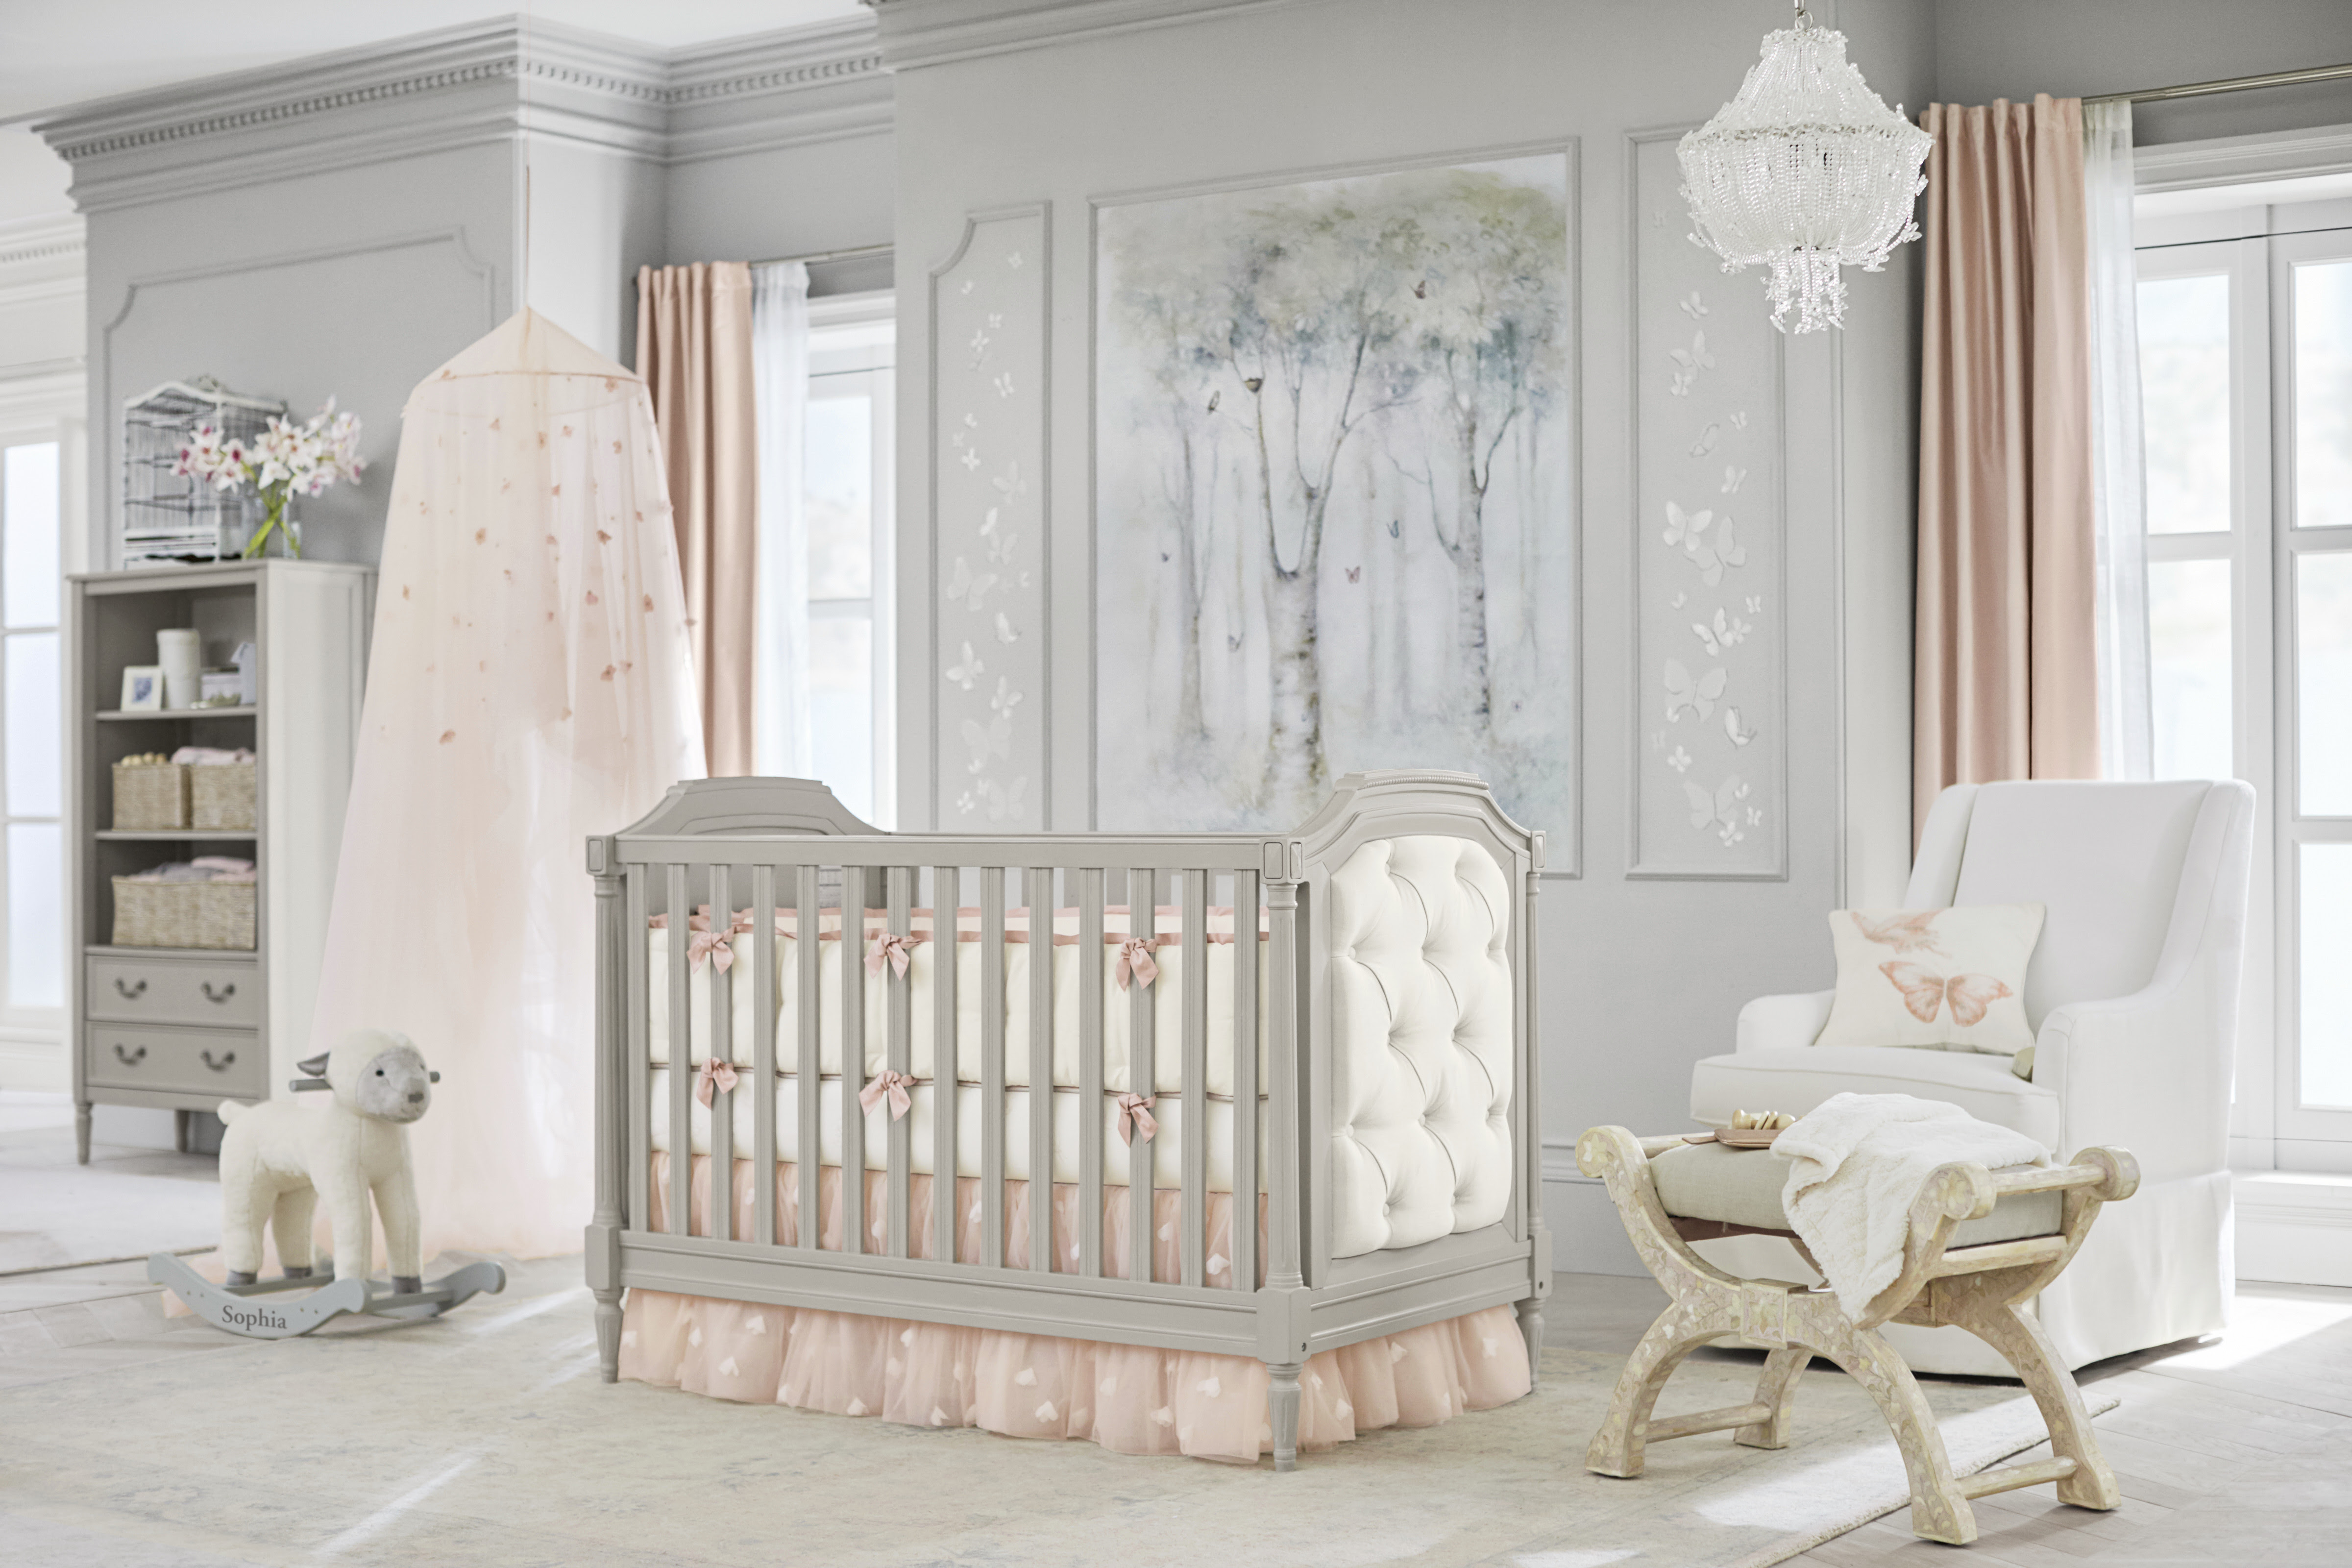 Monique Lhuillier Tells Us About Her Whimsical New Pottery Barn Kids